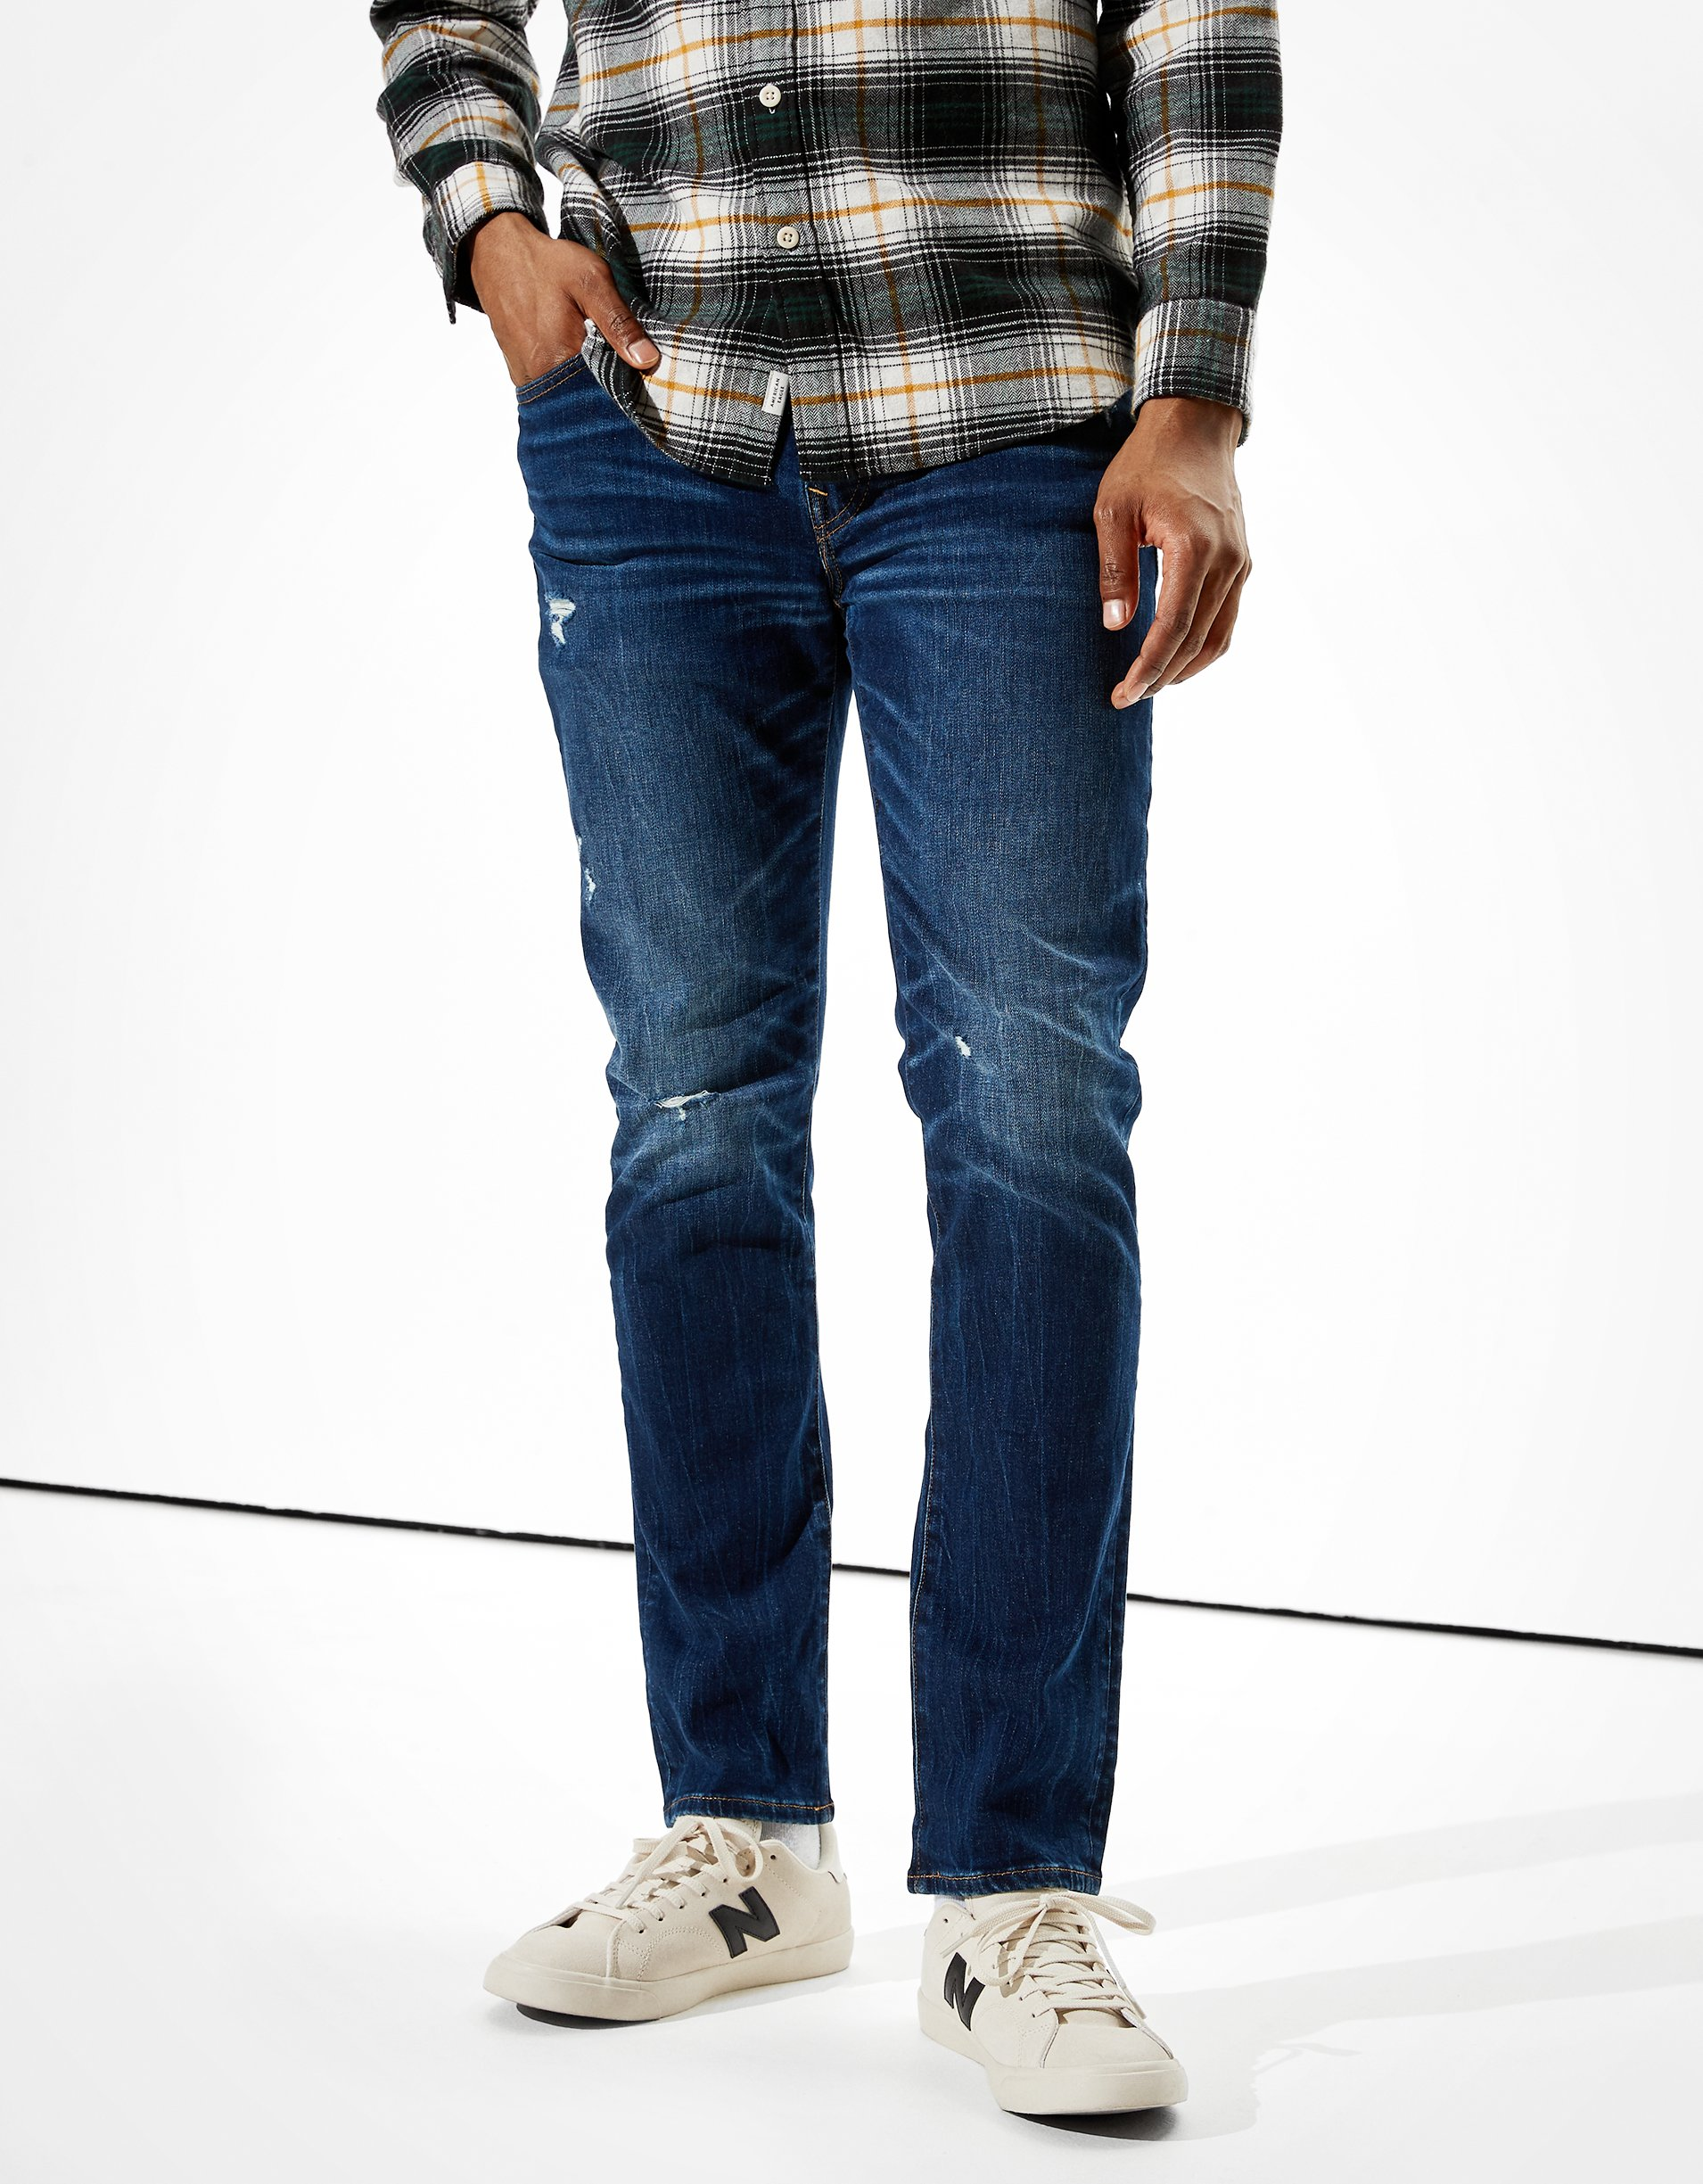 .99 Men Jeans at American Eagle + Free shipping at !